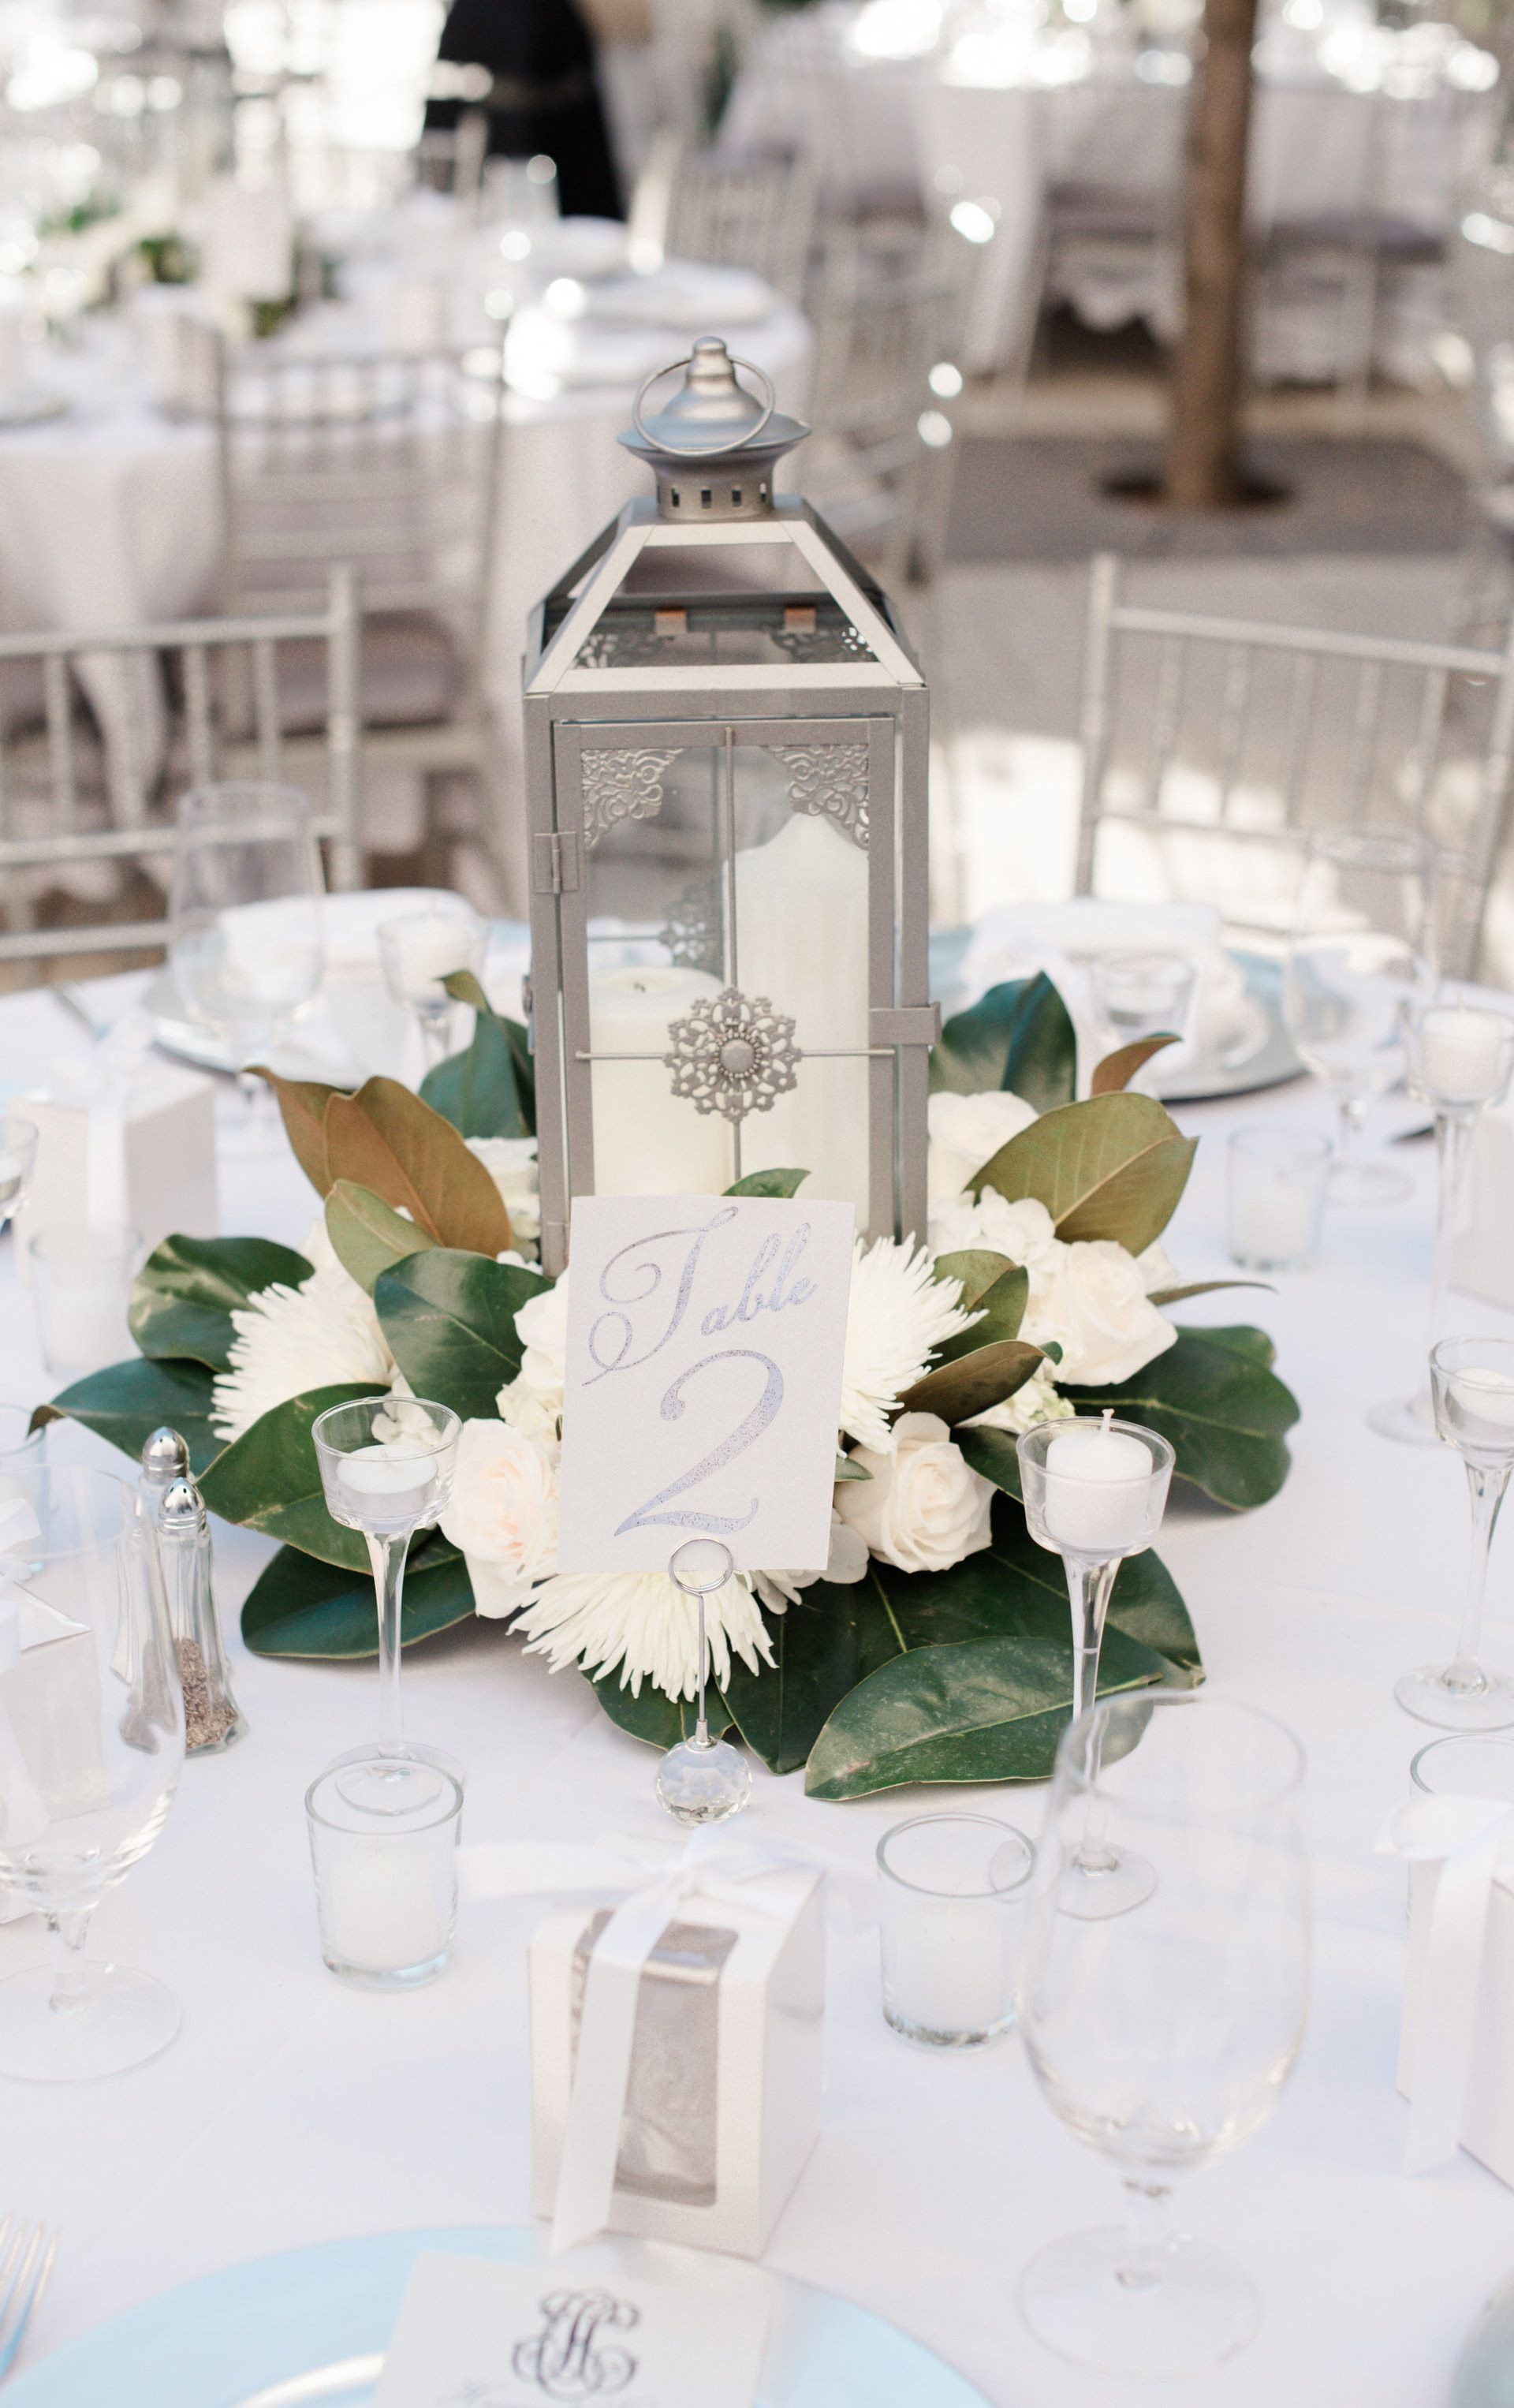 Southern Living at Home Vase Of 47 Vase Centerpiece Ideas the Weekly World Inside Vase Centerpiece Ideas Elegant 40 Tall Table Elegant Tall Vase Centerpiece Ideas Vases Flower Water Of Vase Centerpiece Ideas